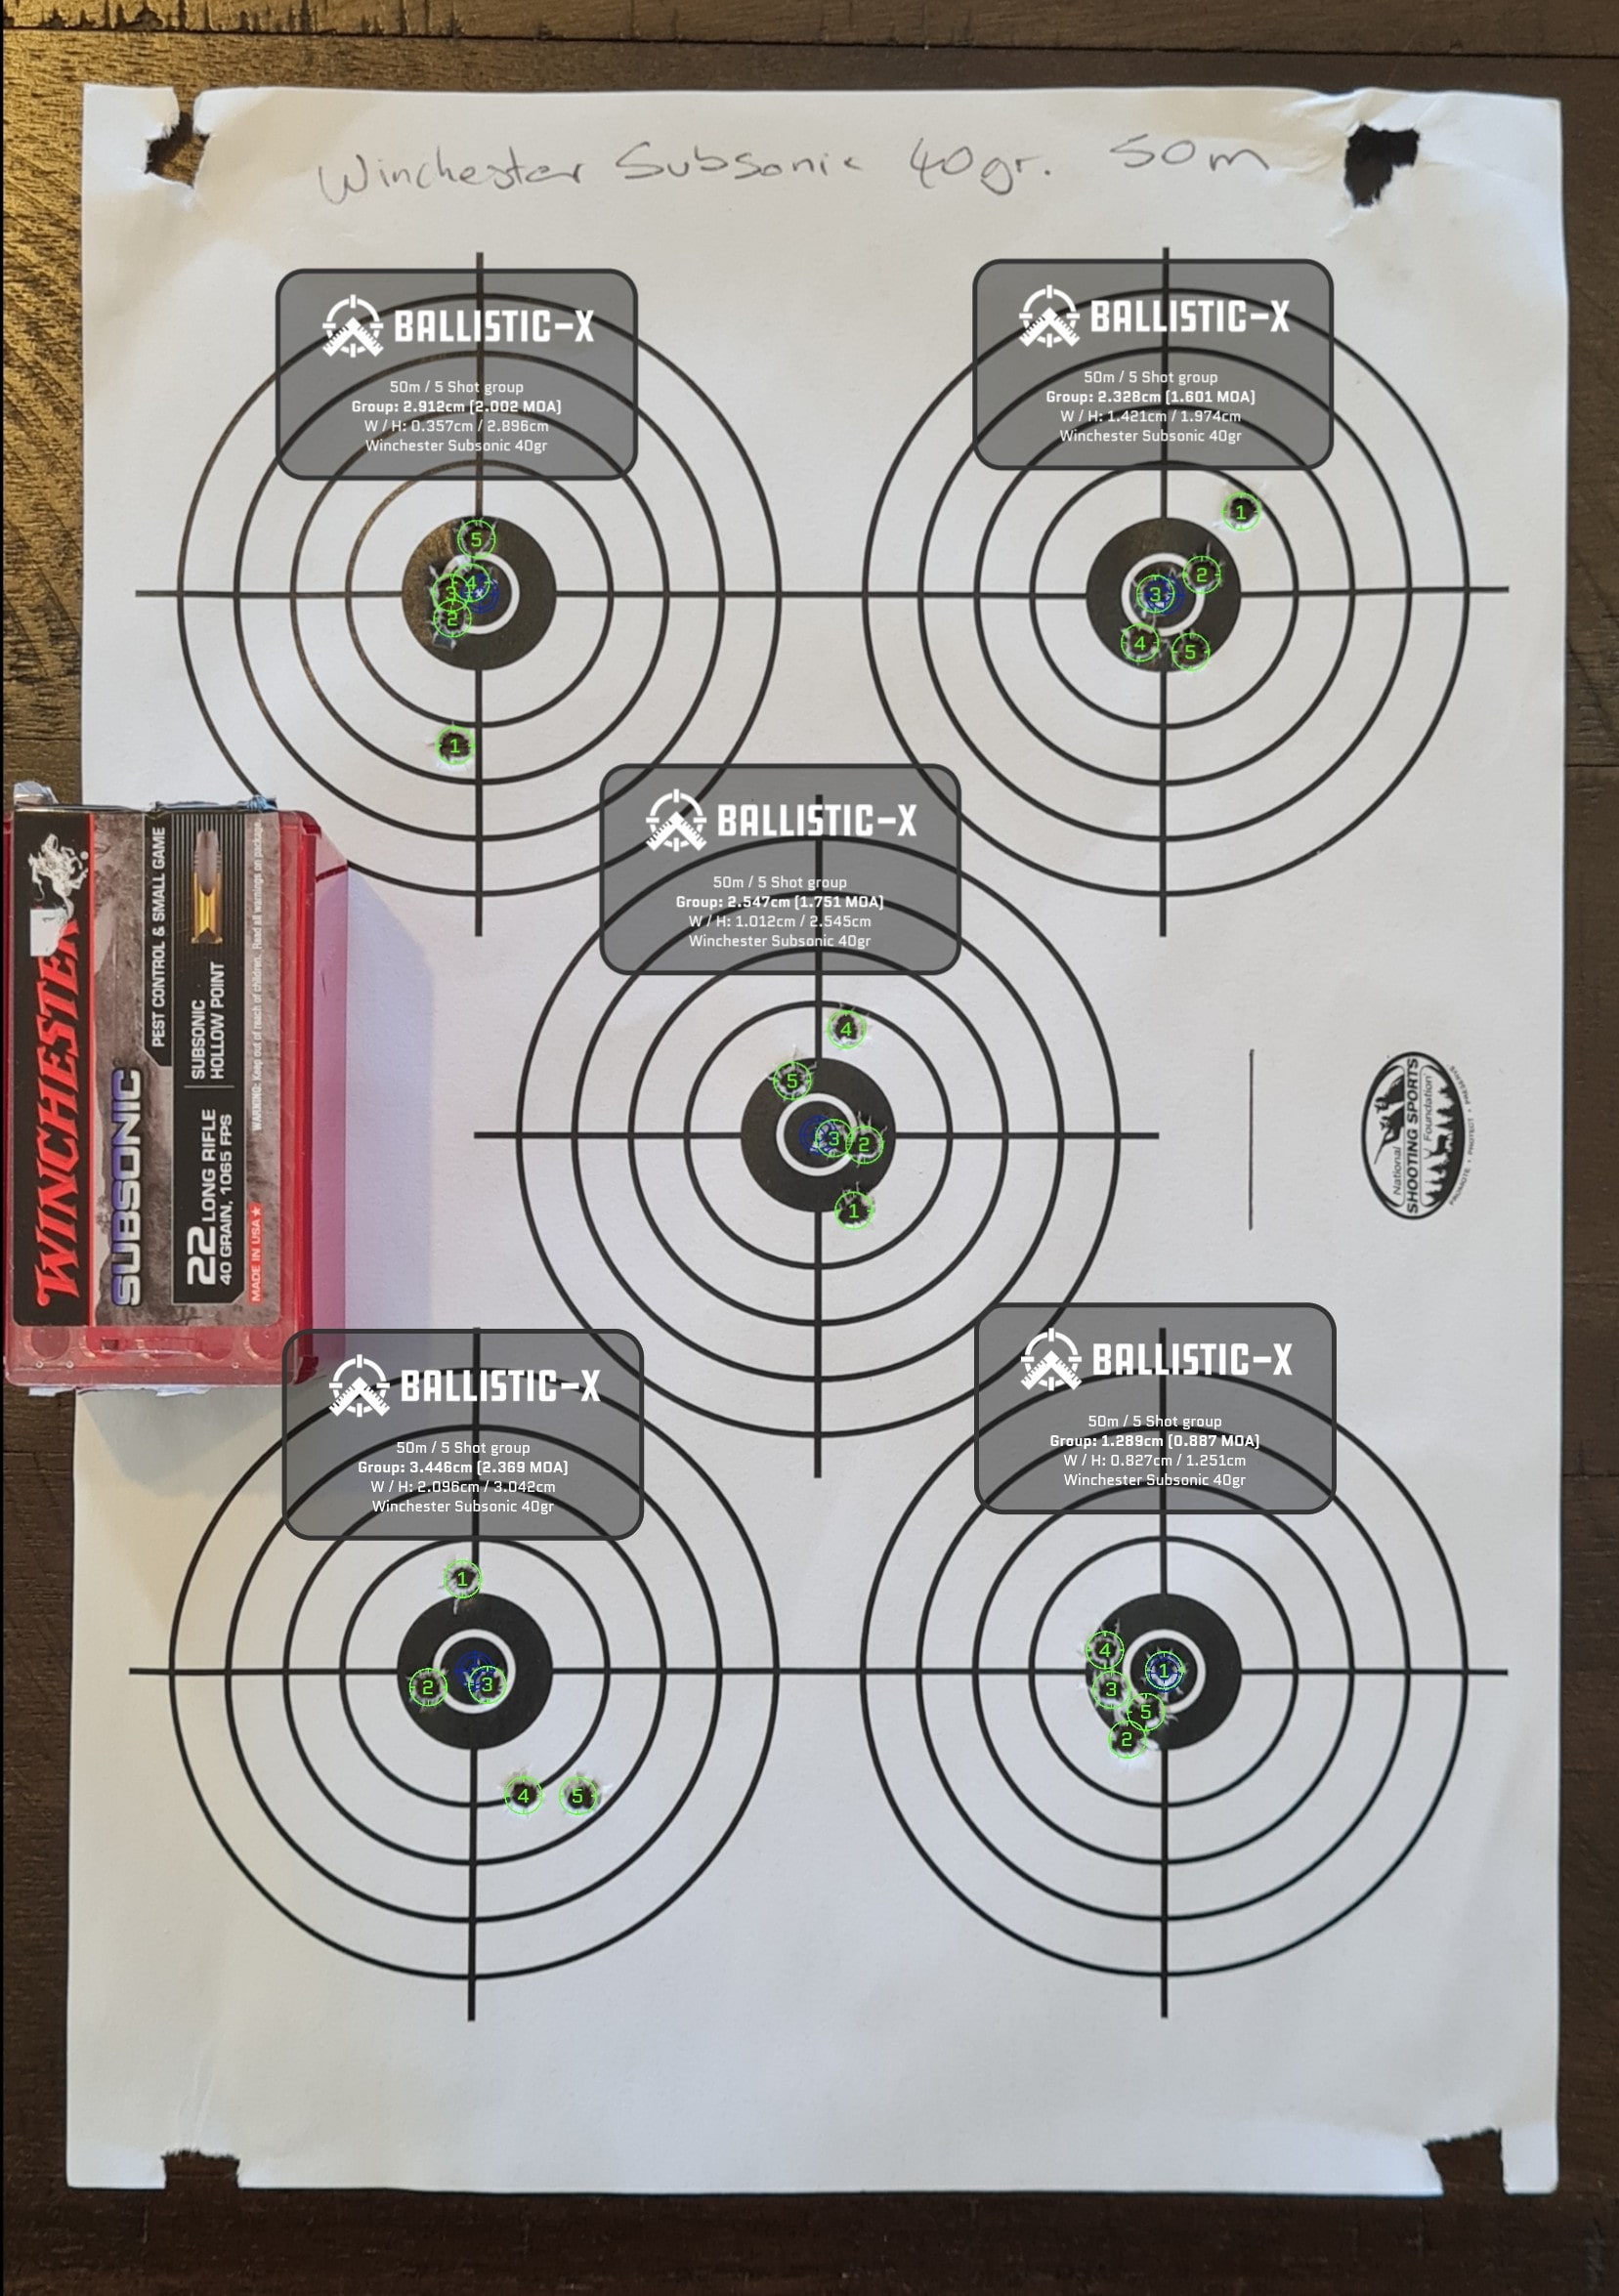 Name:  Winchester Subsonic 40gr 50m.jpg Views: 127 Size:  476.0 KB